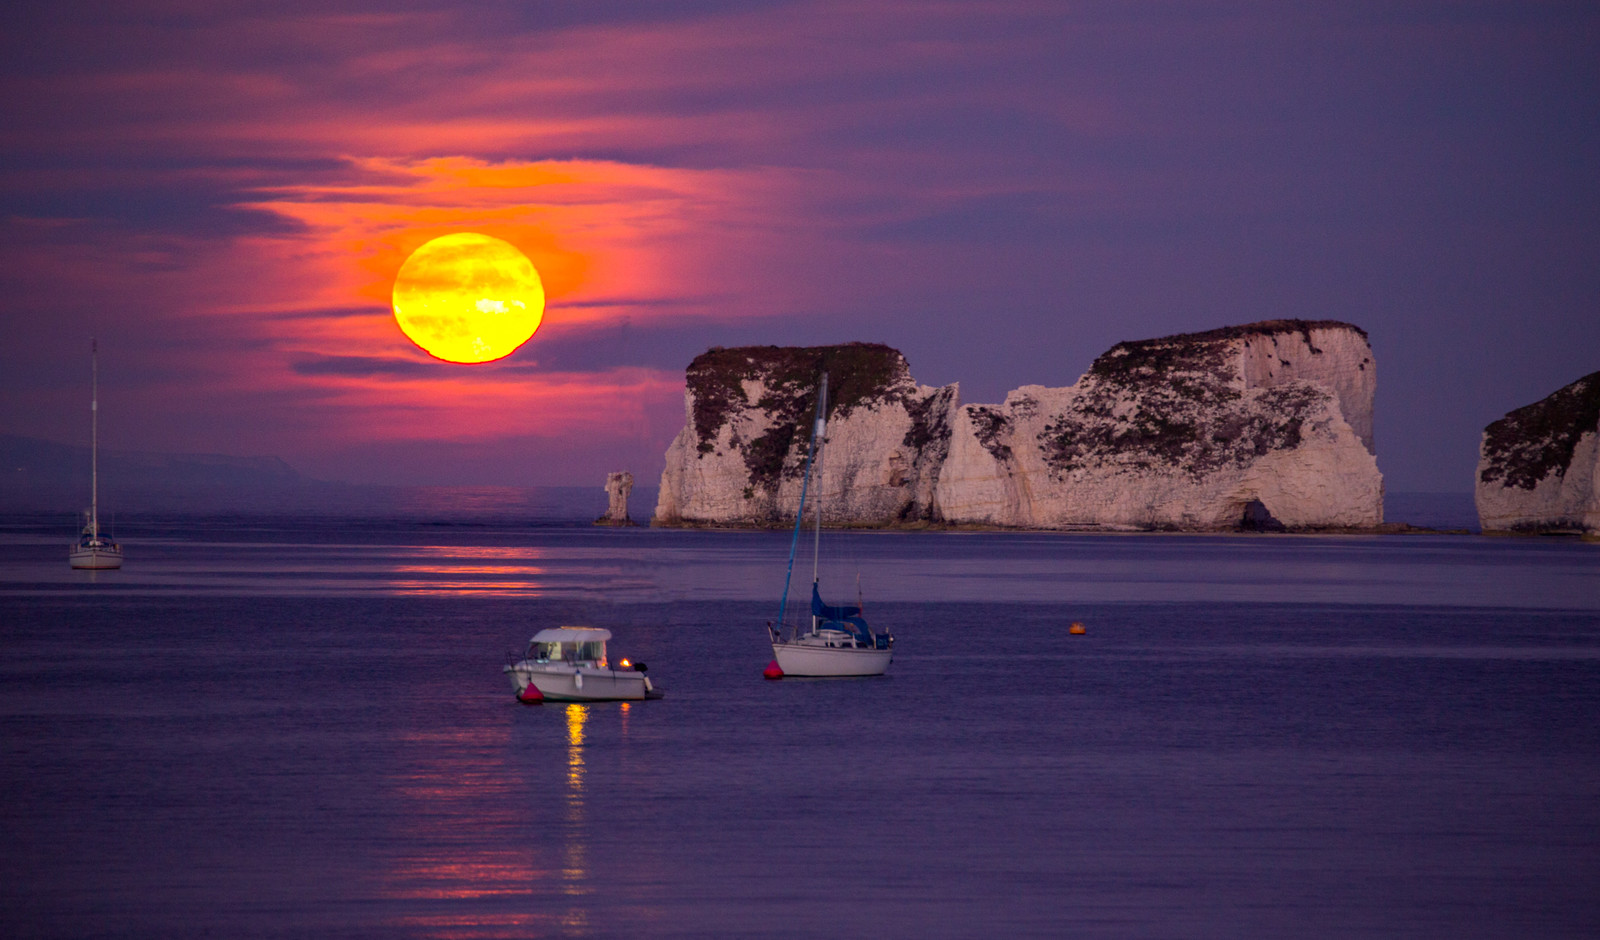 Harvest Moonrise over Old Harry rocks in Dorset